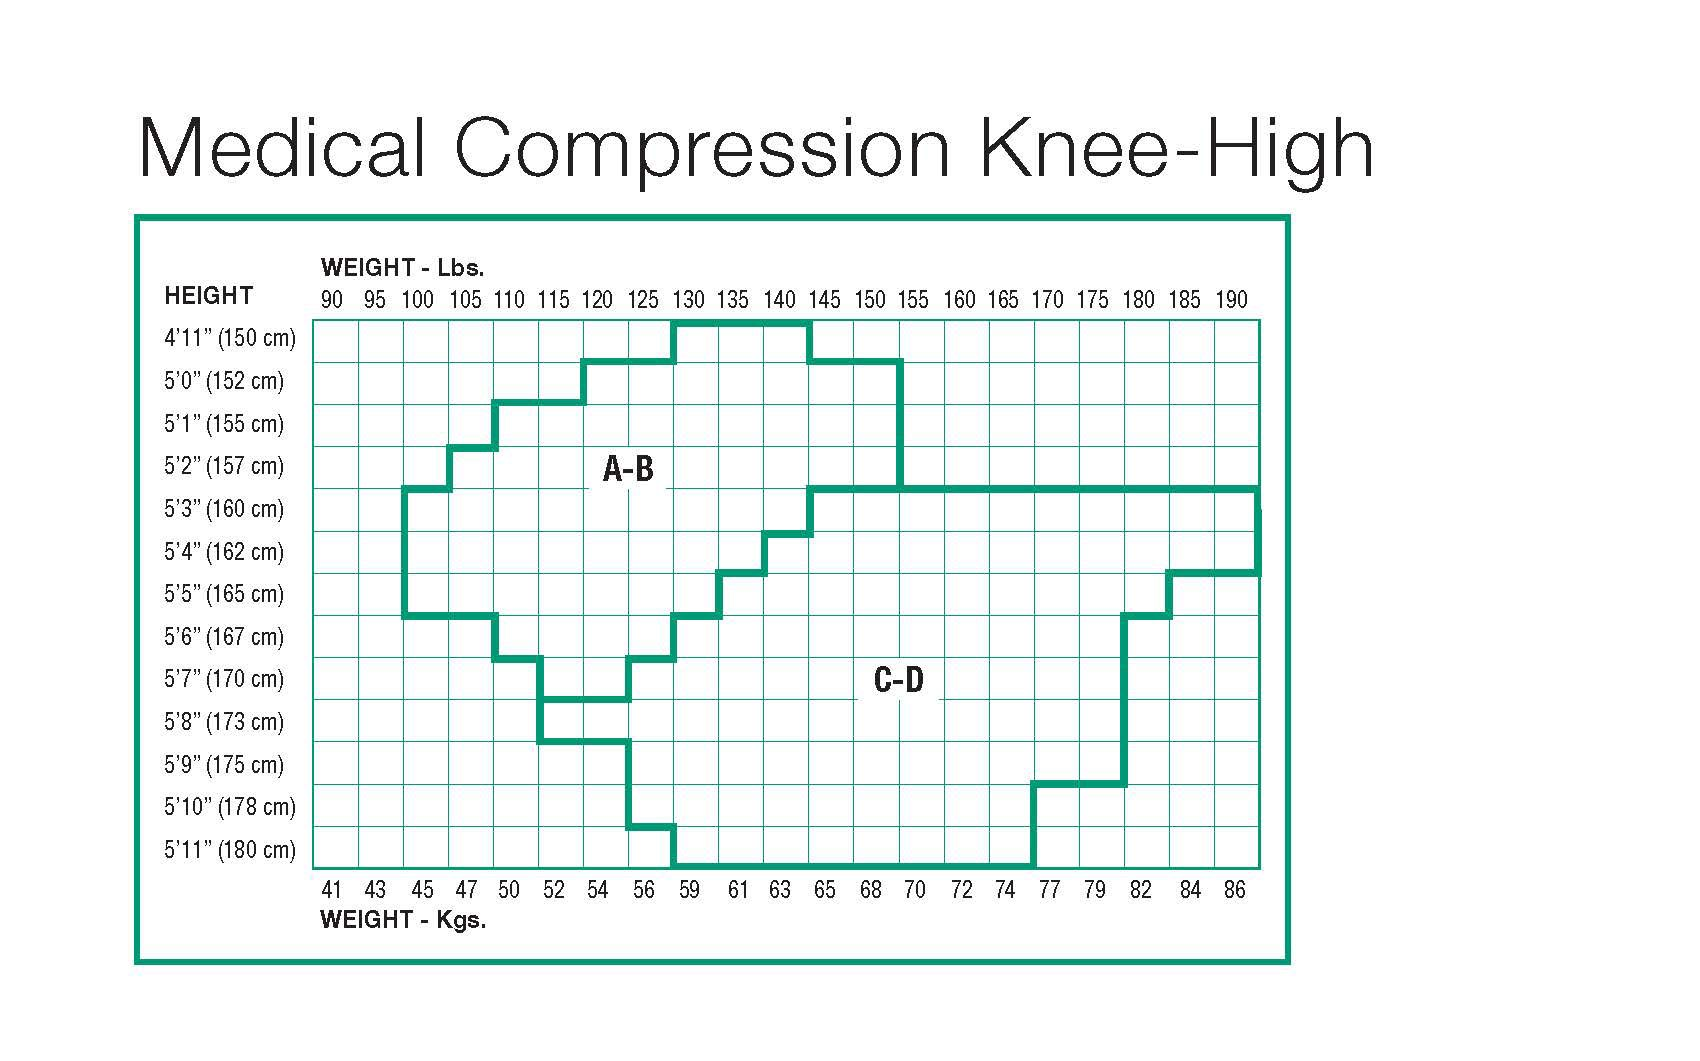 Size Guide for Medical Compression Knee-High.